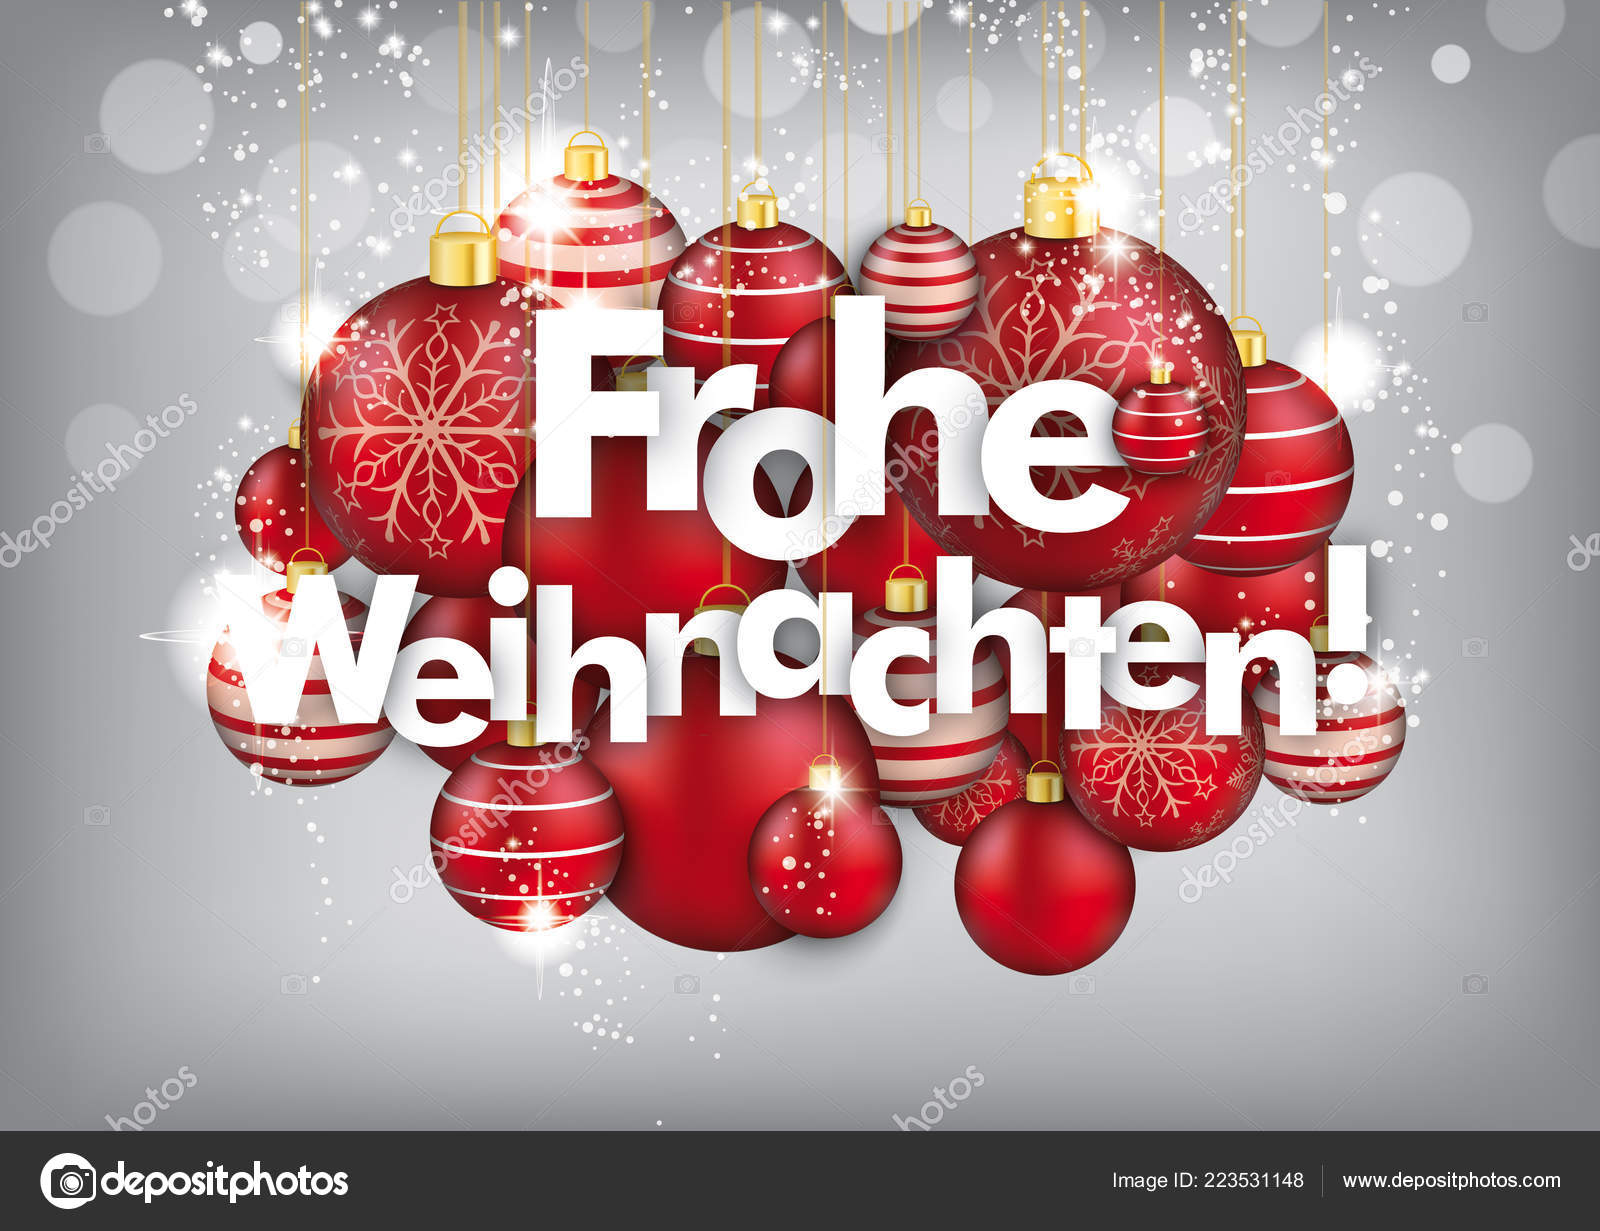 Frohe Weihnachten German Text Frohe Weihnachten Translate Merry Christmas Eps Vector